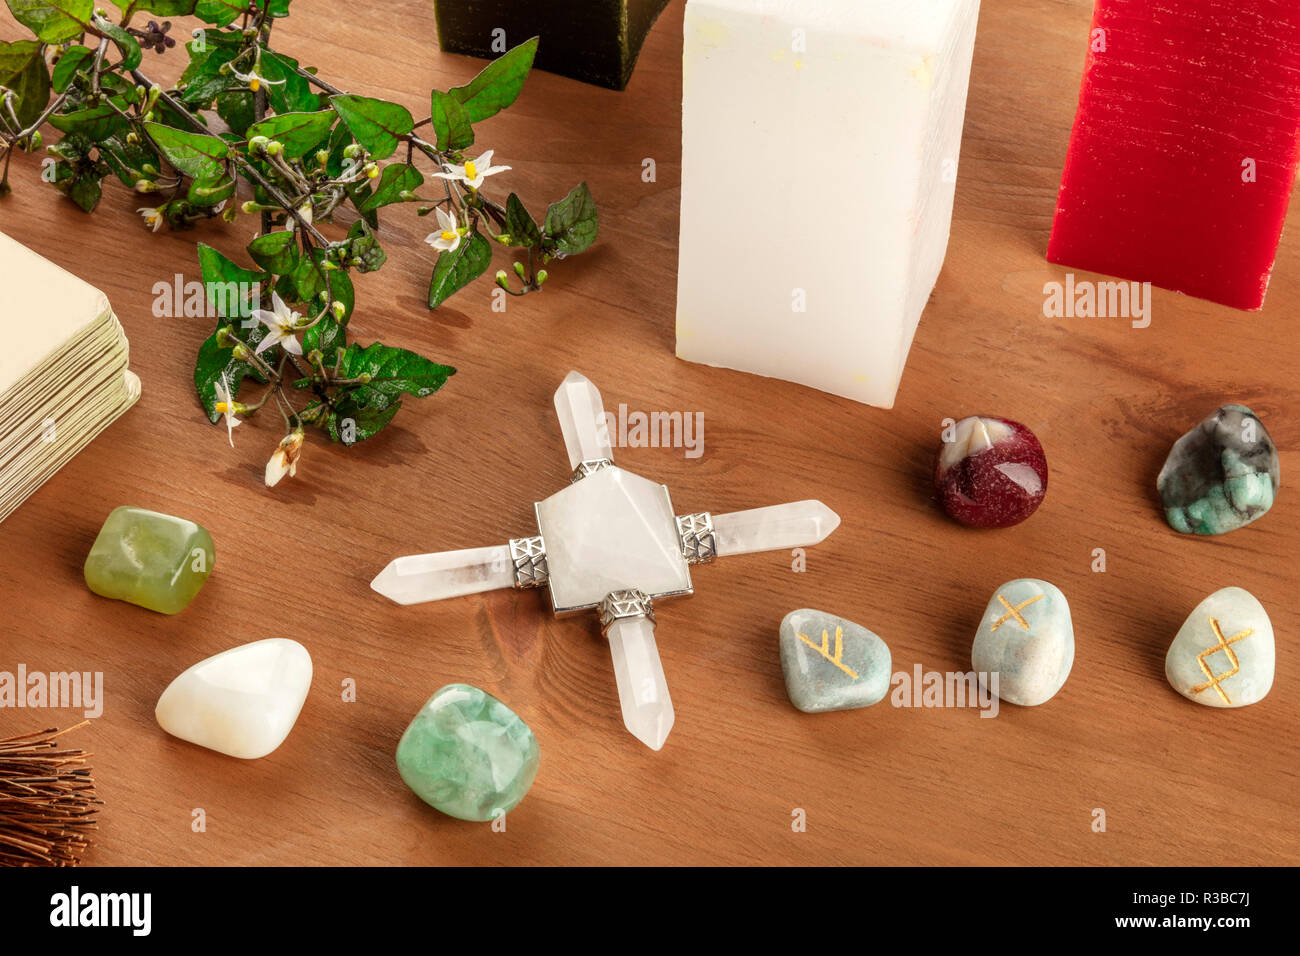 Magic. A photo of a Wiccan altar with candles, crystal stones, and Norse runes, with Tarot cards. Fortune-telling concept - Stock Image